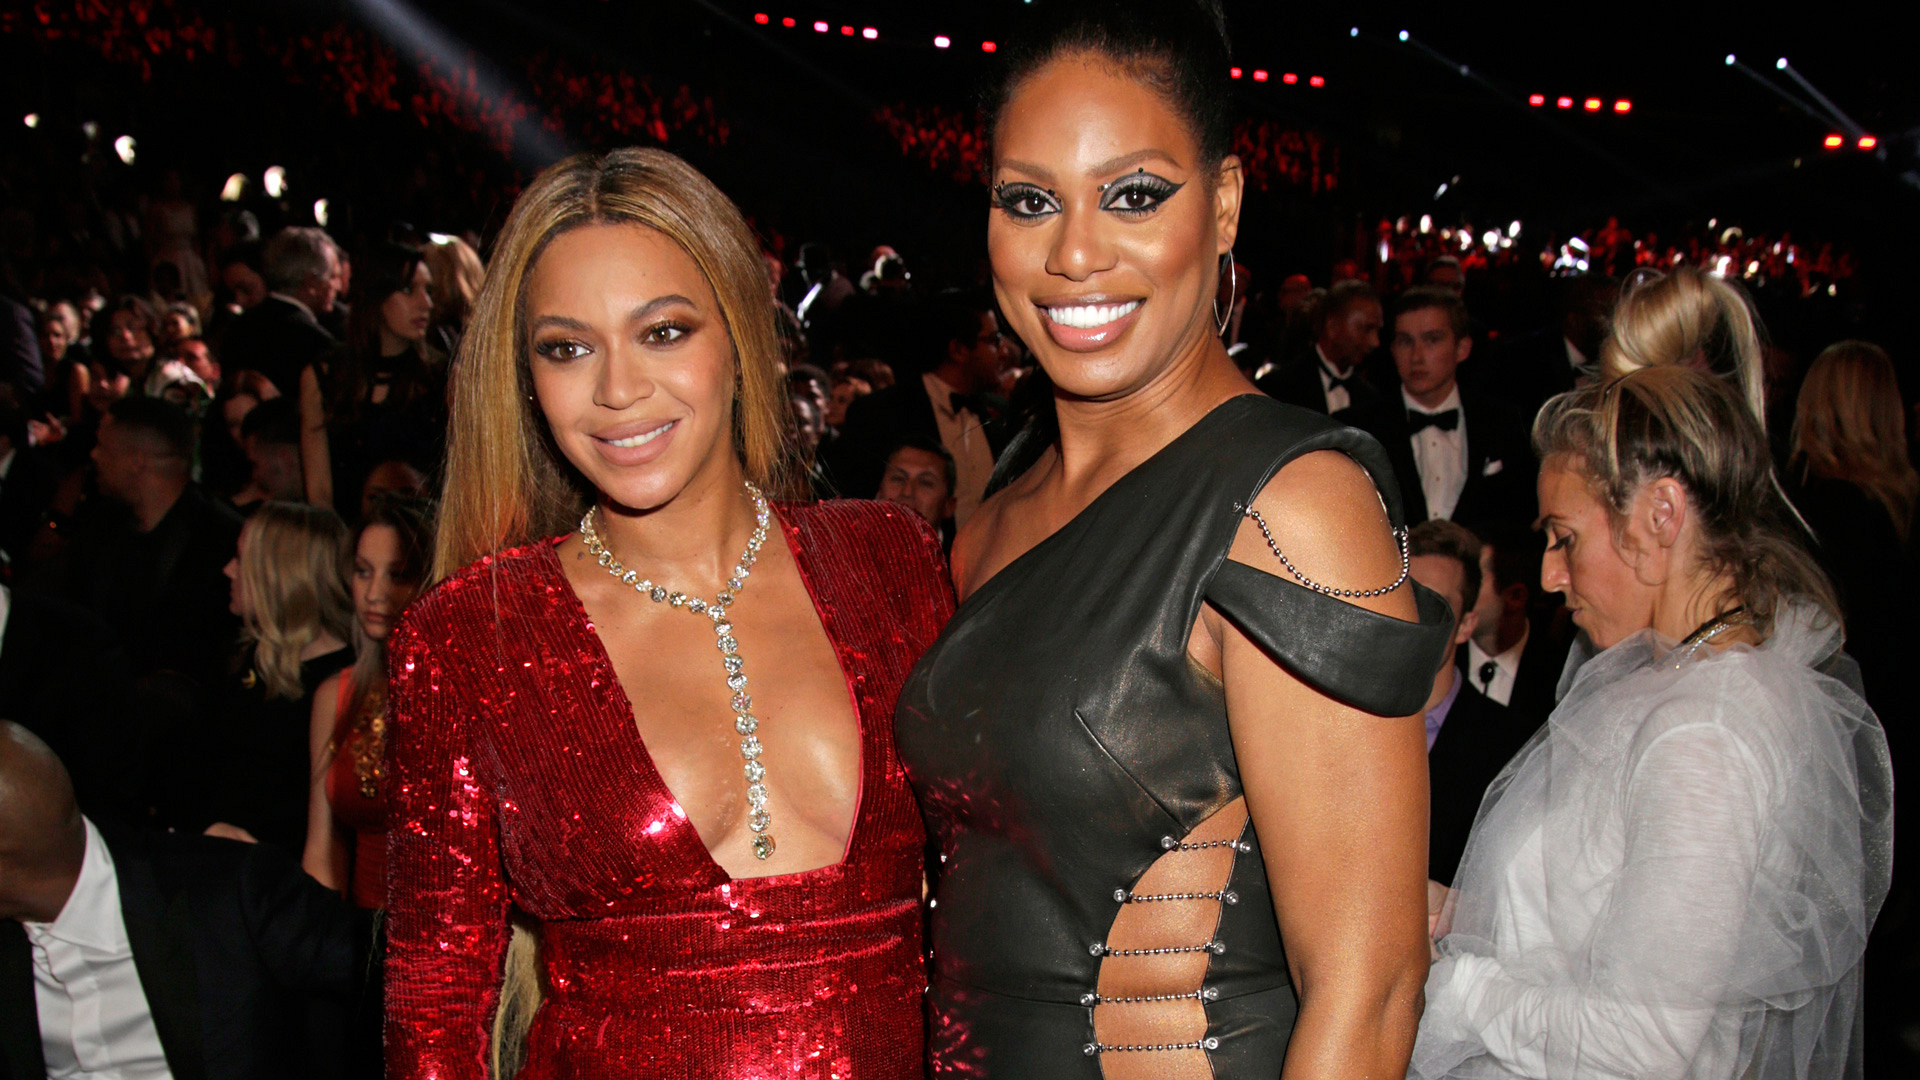 Beyoncé and actress Laverne Cox reveal lots of skin while posing together during a GRAMMY commercial break.